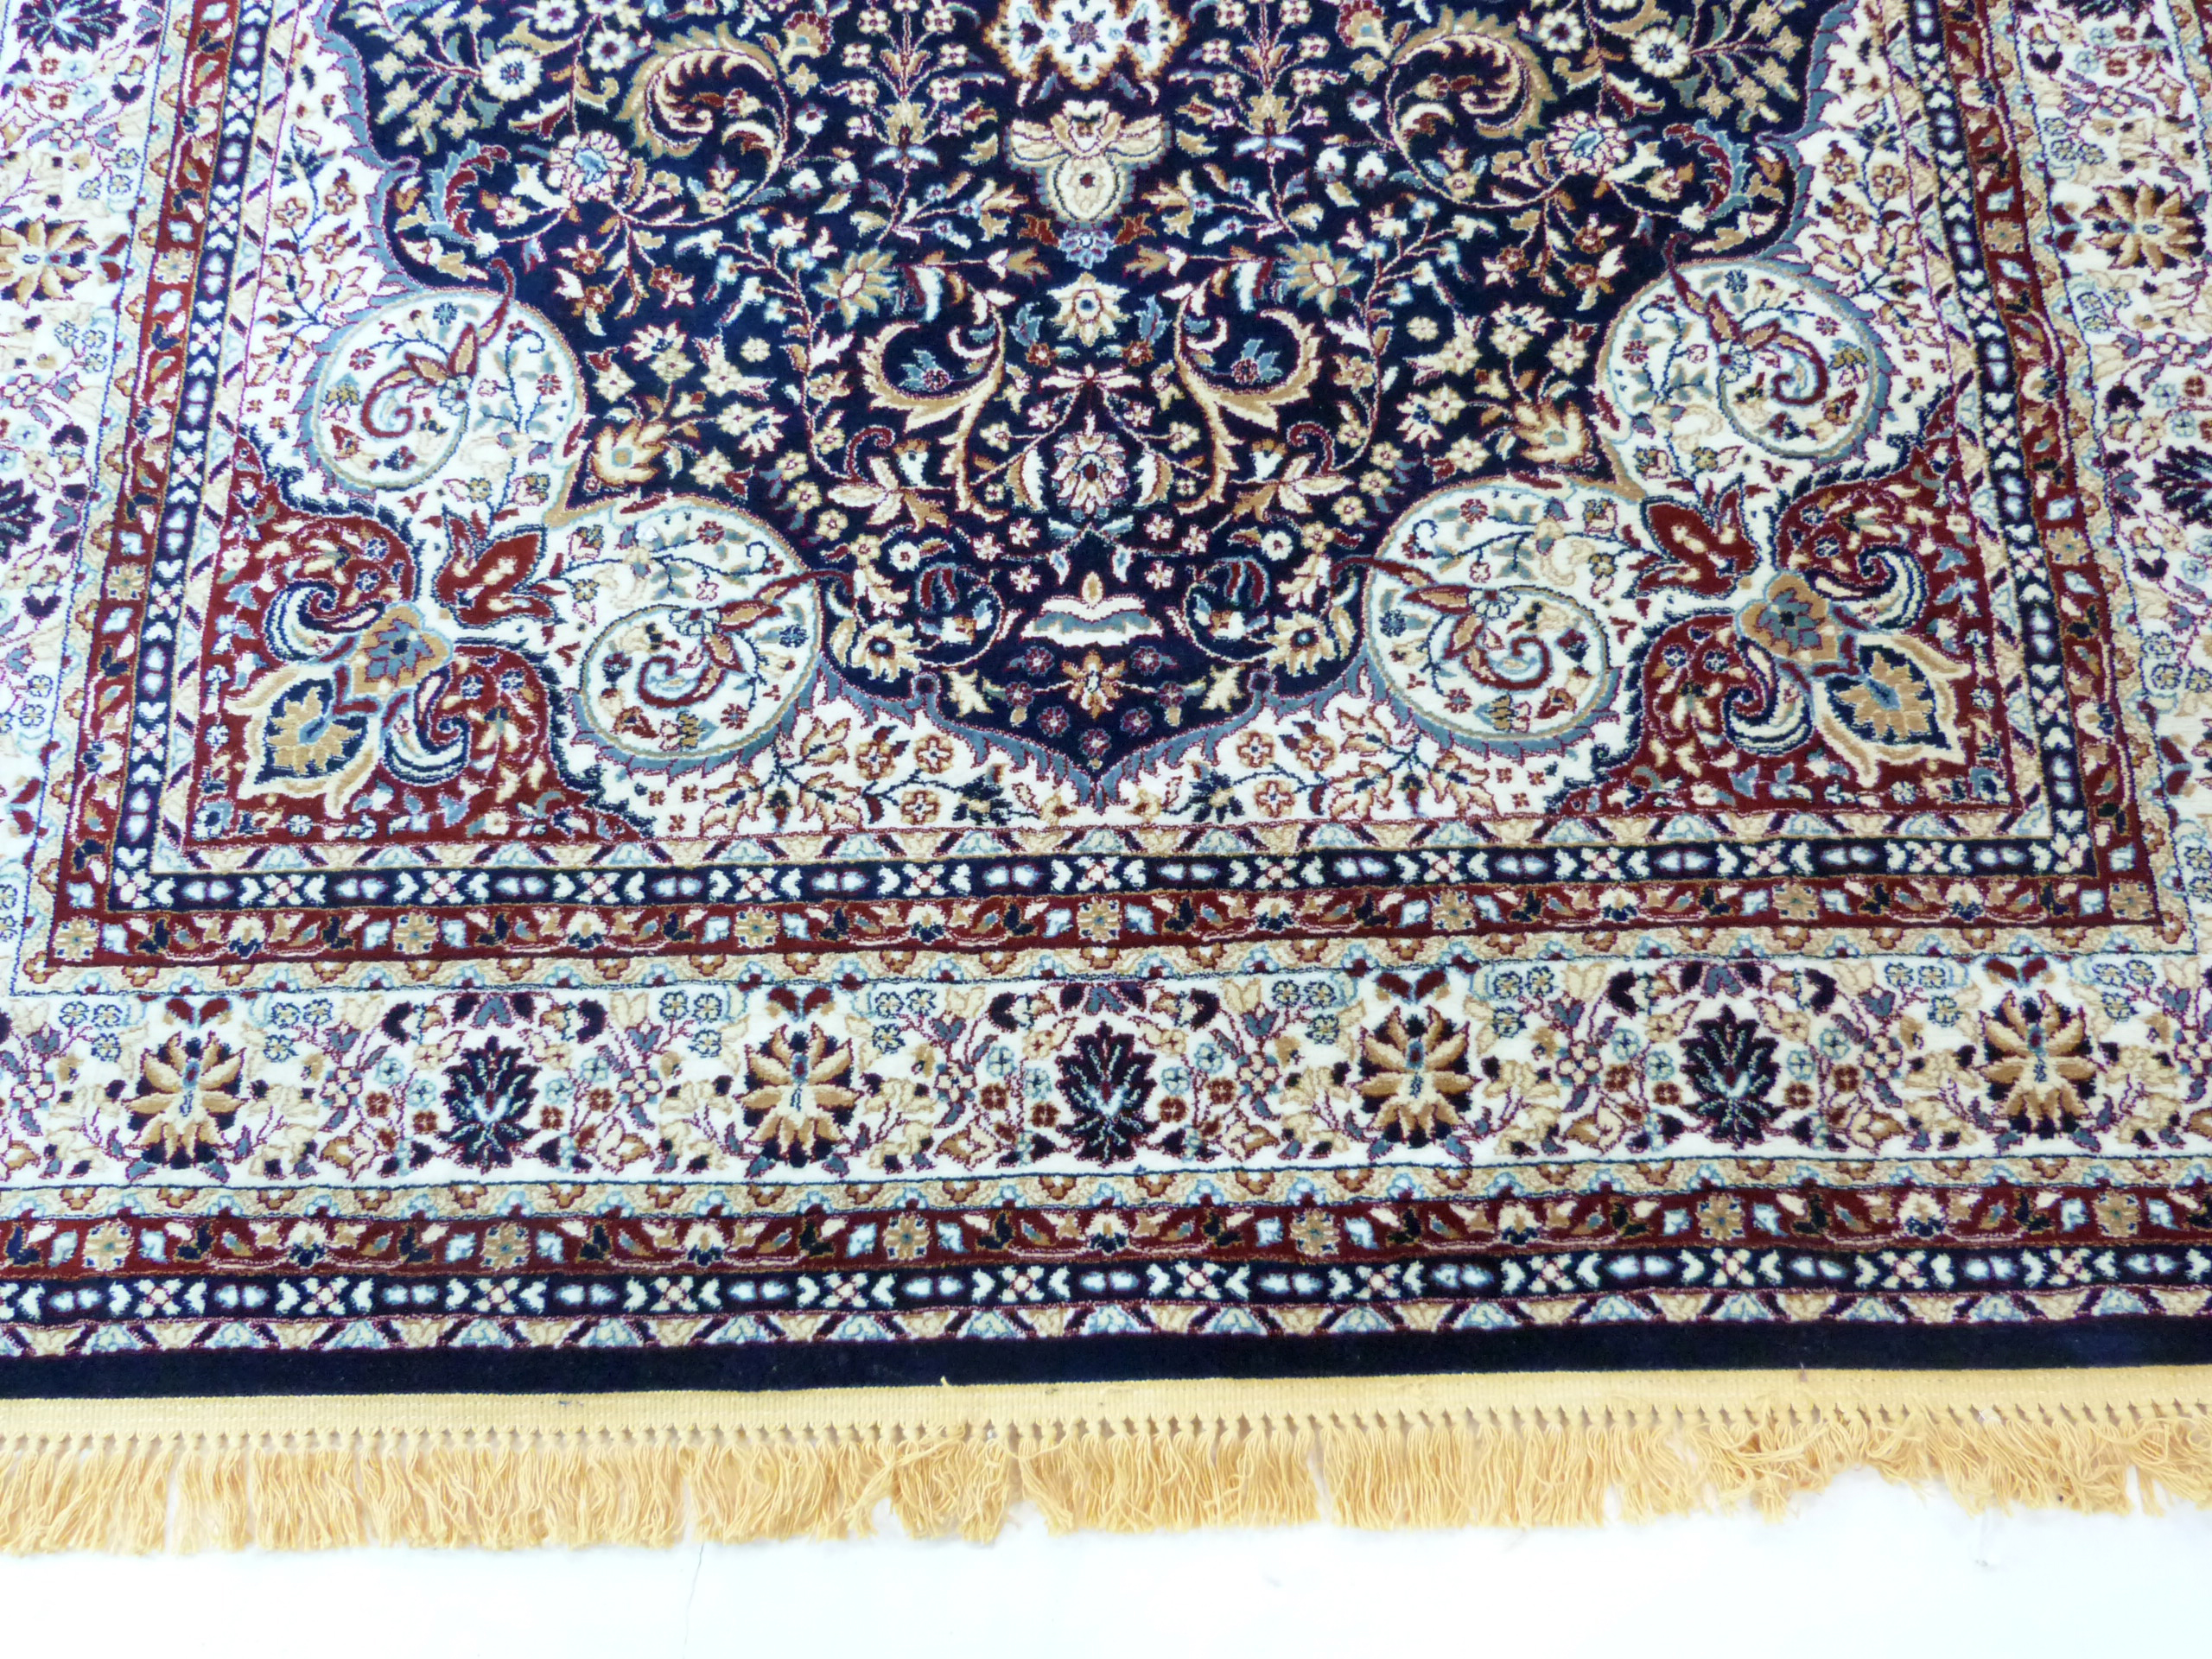 Rich blue ground full pile Turkish Carpet, with floral medallion design 320cm x 200cm approximately - Image 3 of 8